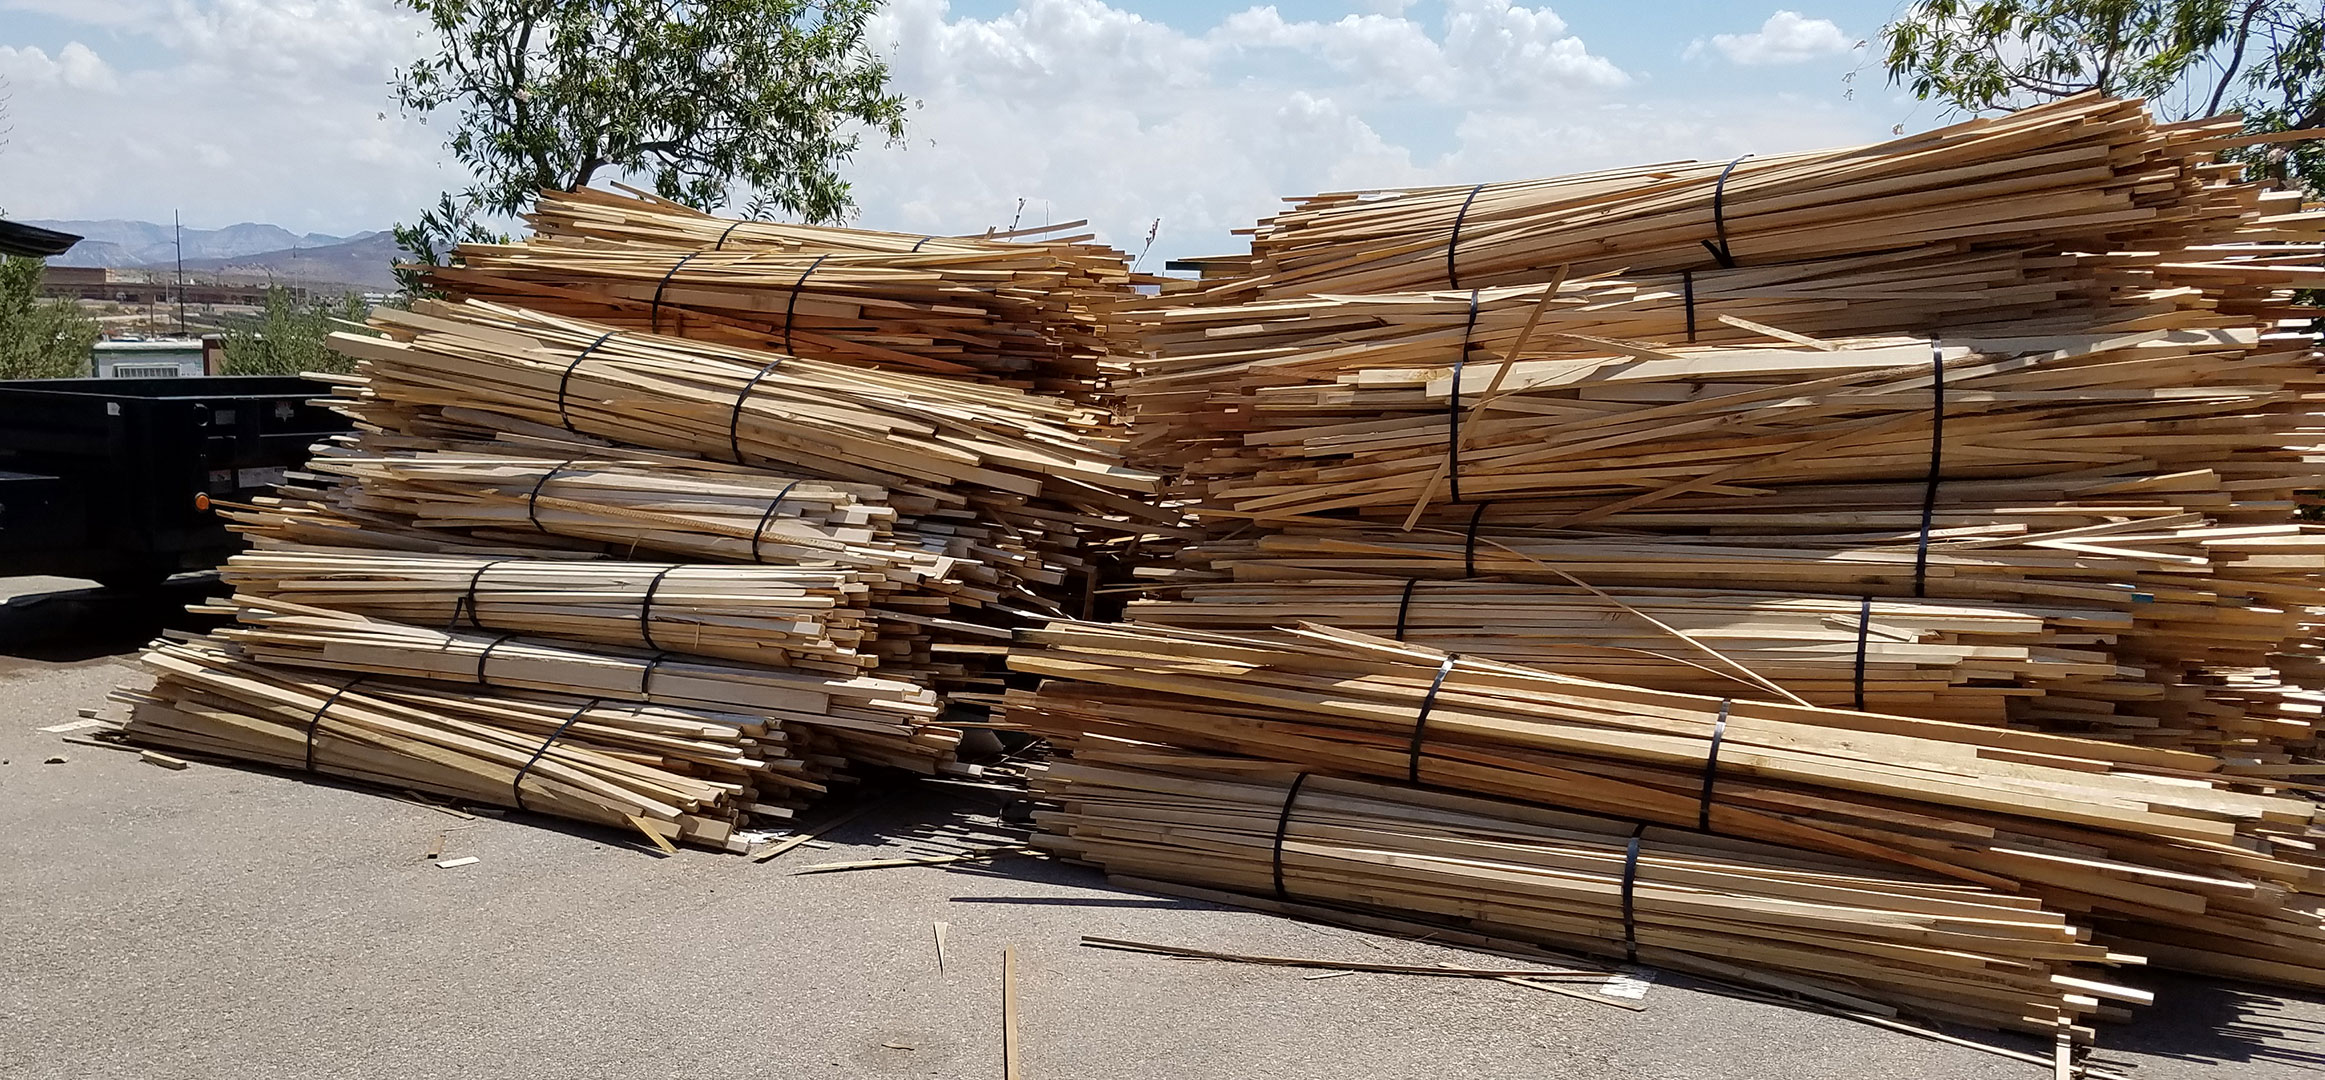 Hardwood to Recycle